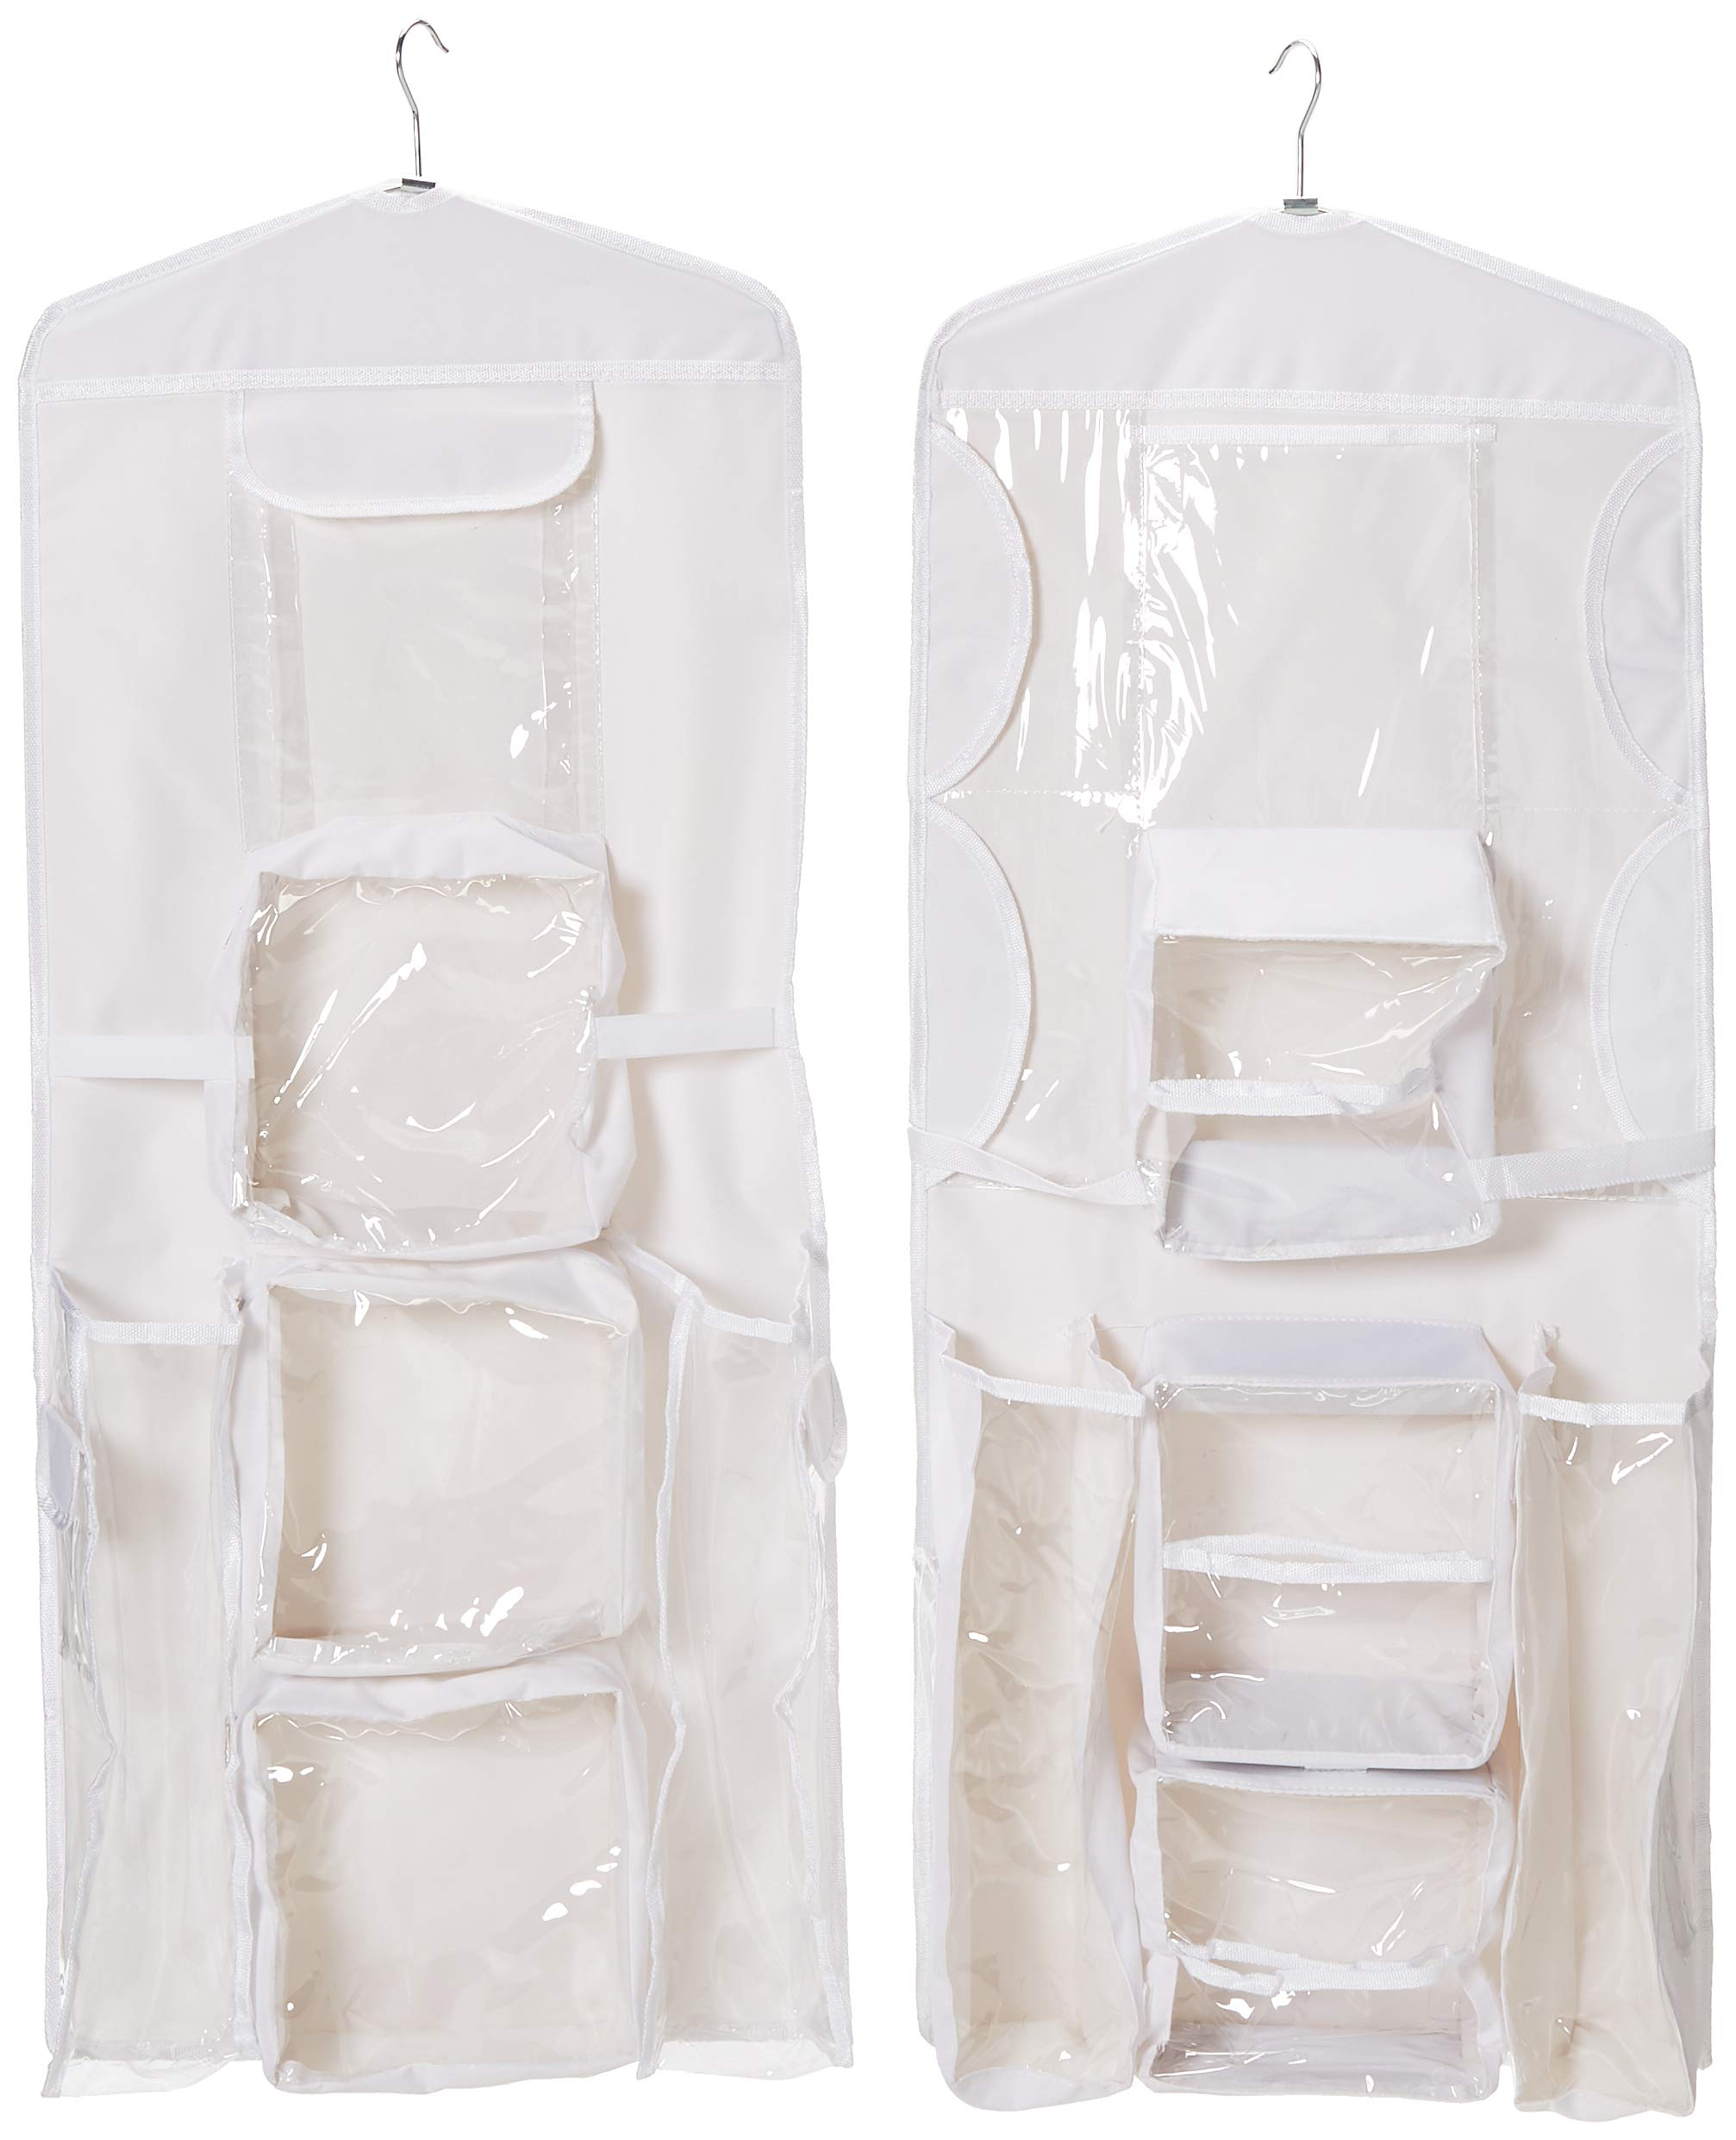 Elf Stor 83-DT5153 Door Hanging Wrapping Paper and Gift Bag Storage Caddy and Organizer Combo Set of 2 in White and Clear